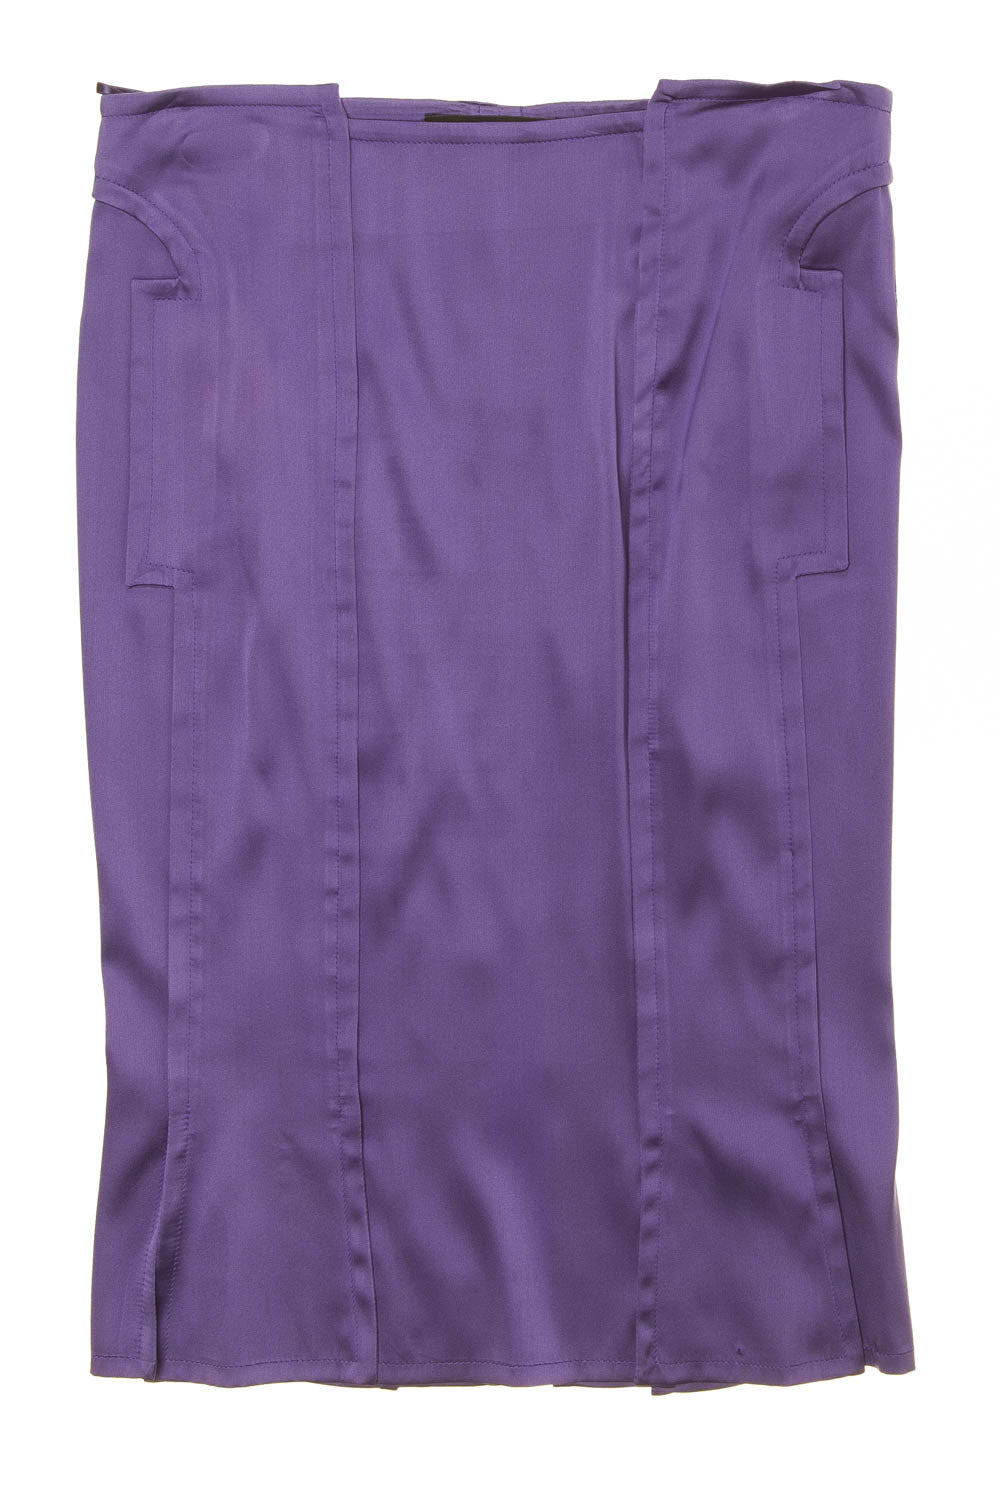 cdd52d69d8 Iconic Tom Ford For Gucci - Purple Pencil Skirt - IT 40